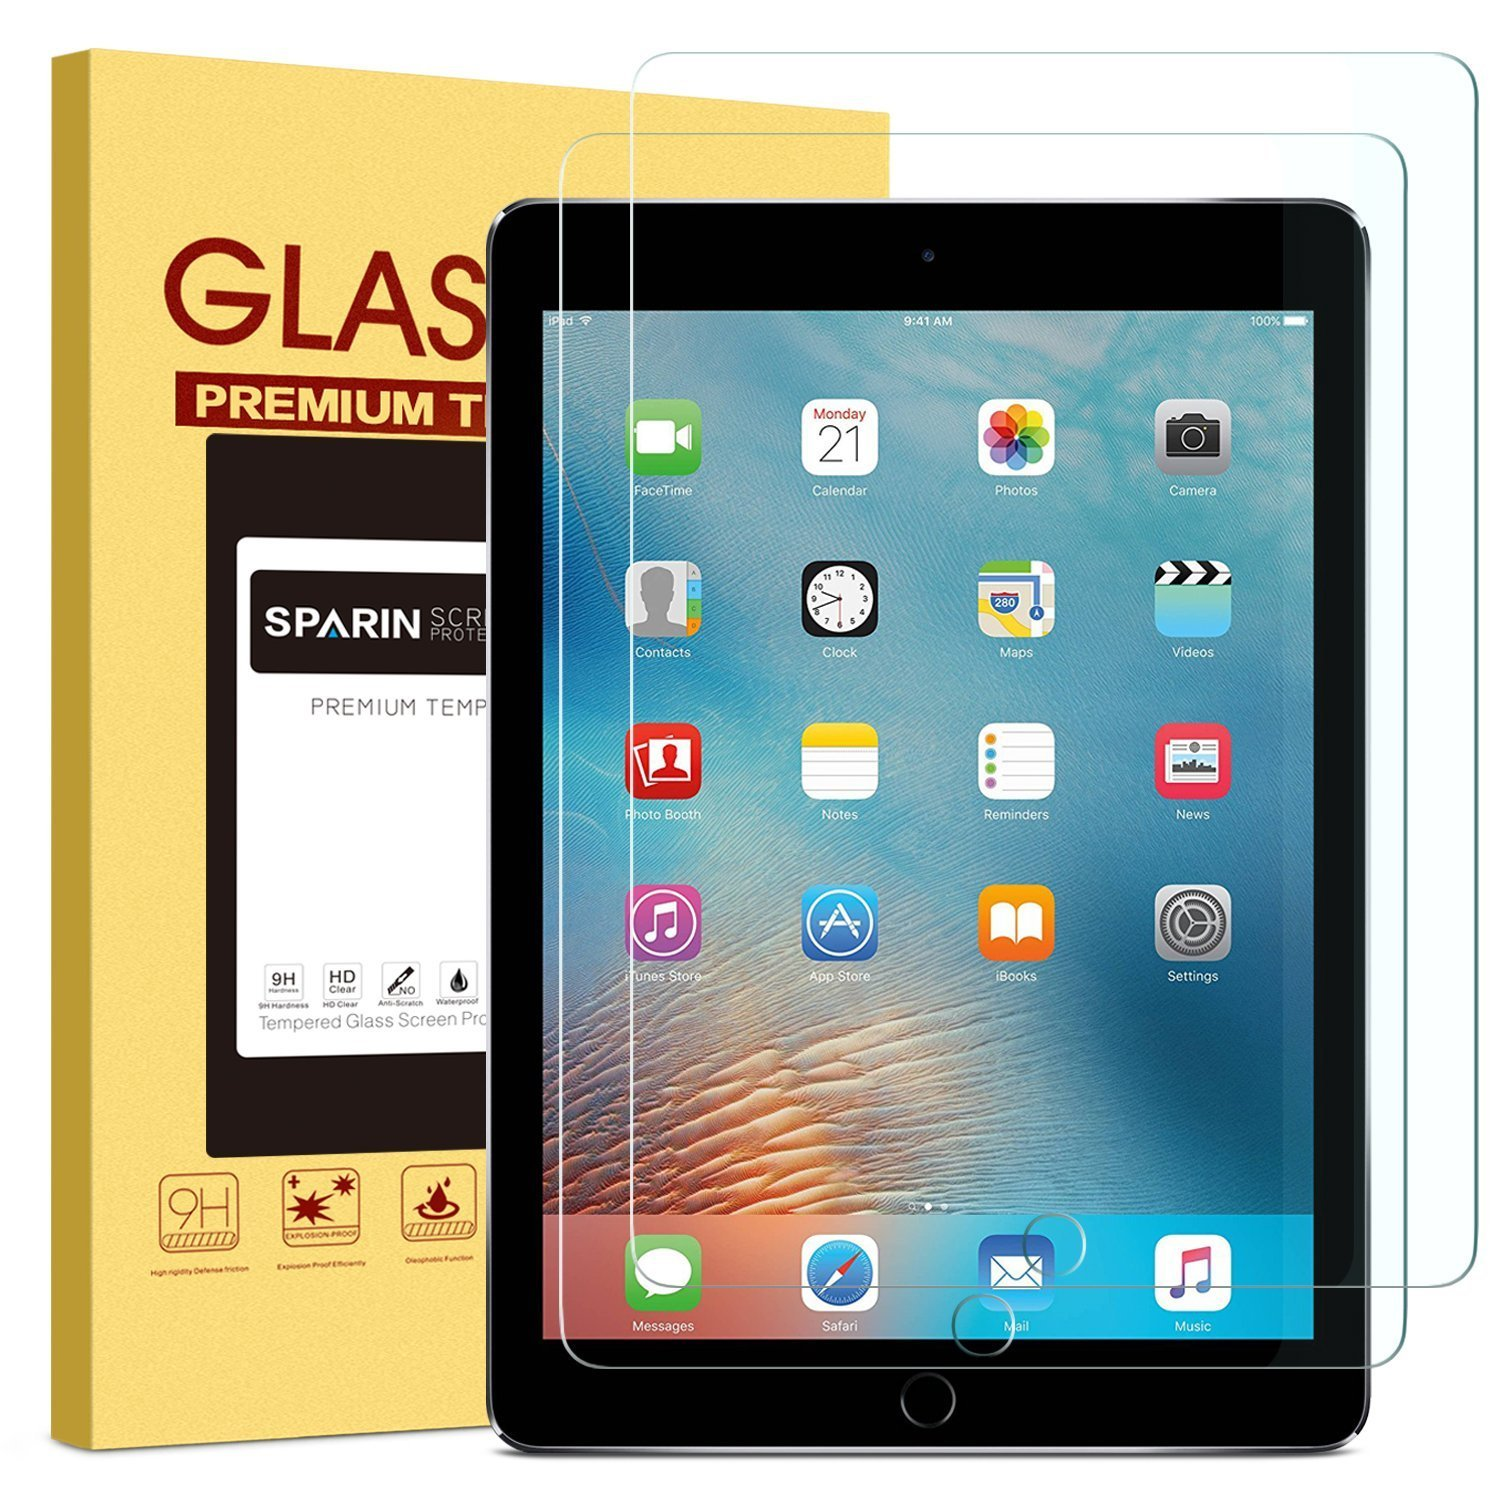 [2 Pack] New iPad 9.7'' (2018 & 2017) / iPad Pro 9.7 / iPad Air 2 / iPad Air Screen Protector, SPARIN Tempered Glass Screen Protector - Apple Pencil Compatible/High Definition/Scratch Resistant